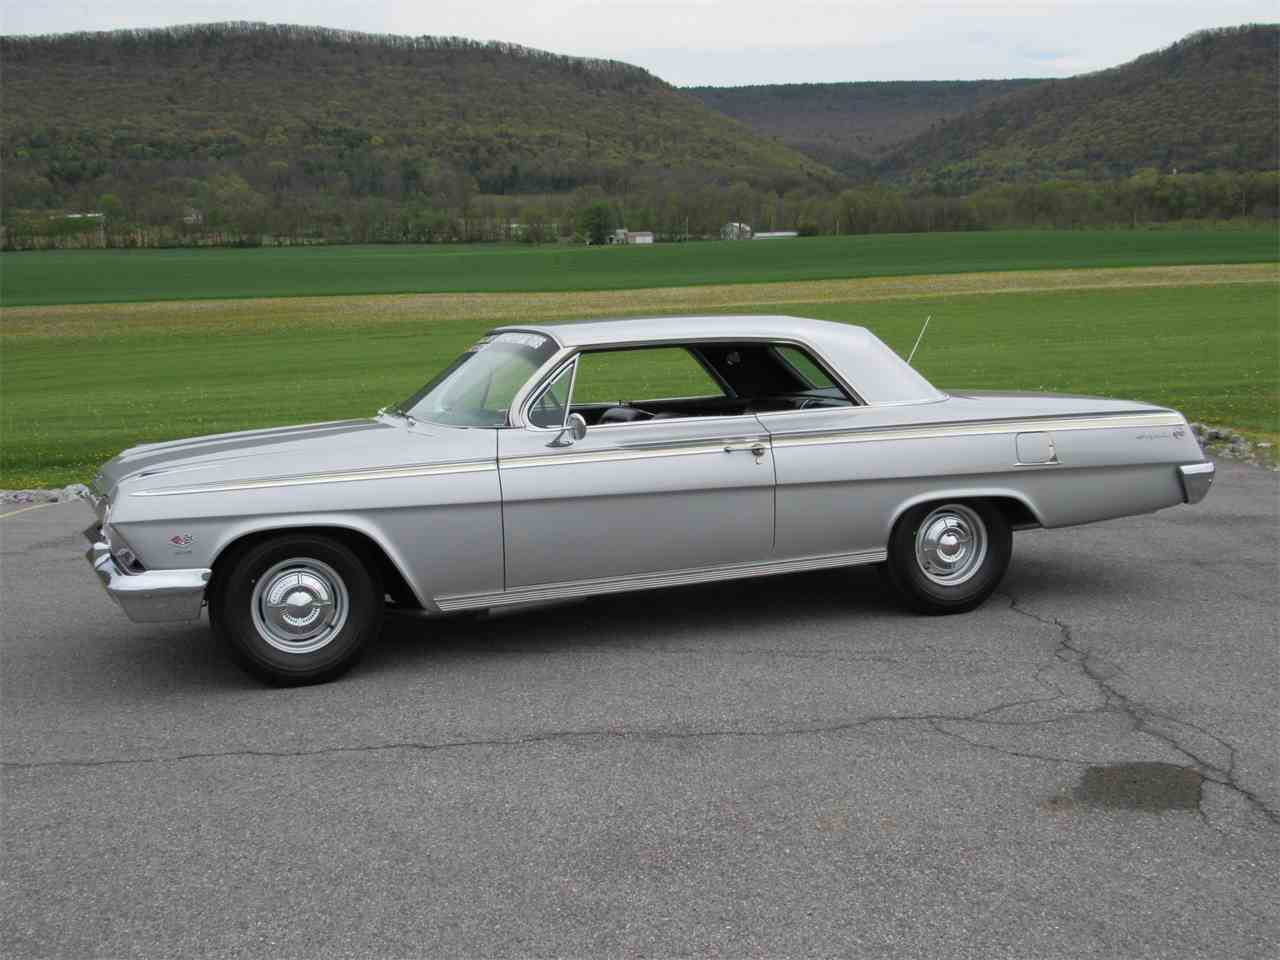 All Chevy 1962 chevy 409 for sale : 1962 Chevrolet Impala SS 409 Coupe for Sale | ClassicCars.com | CC ...